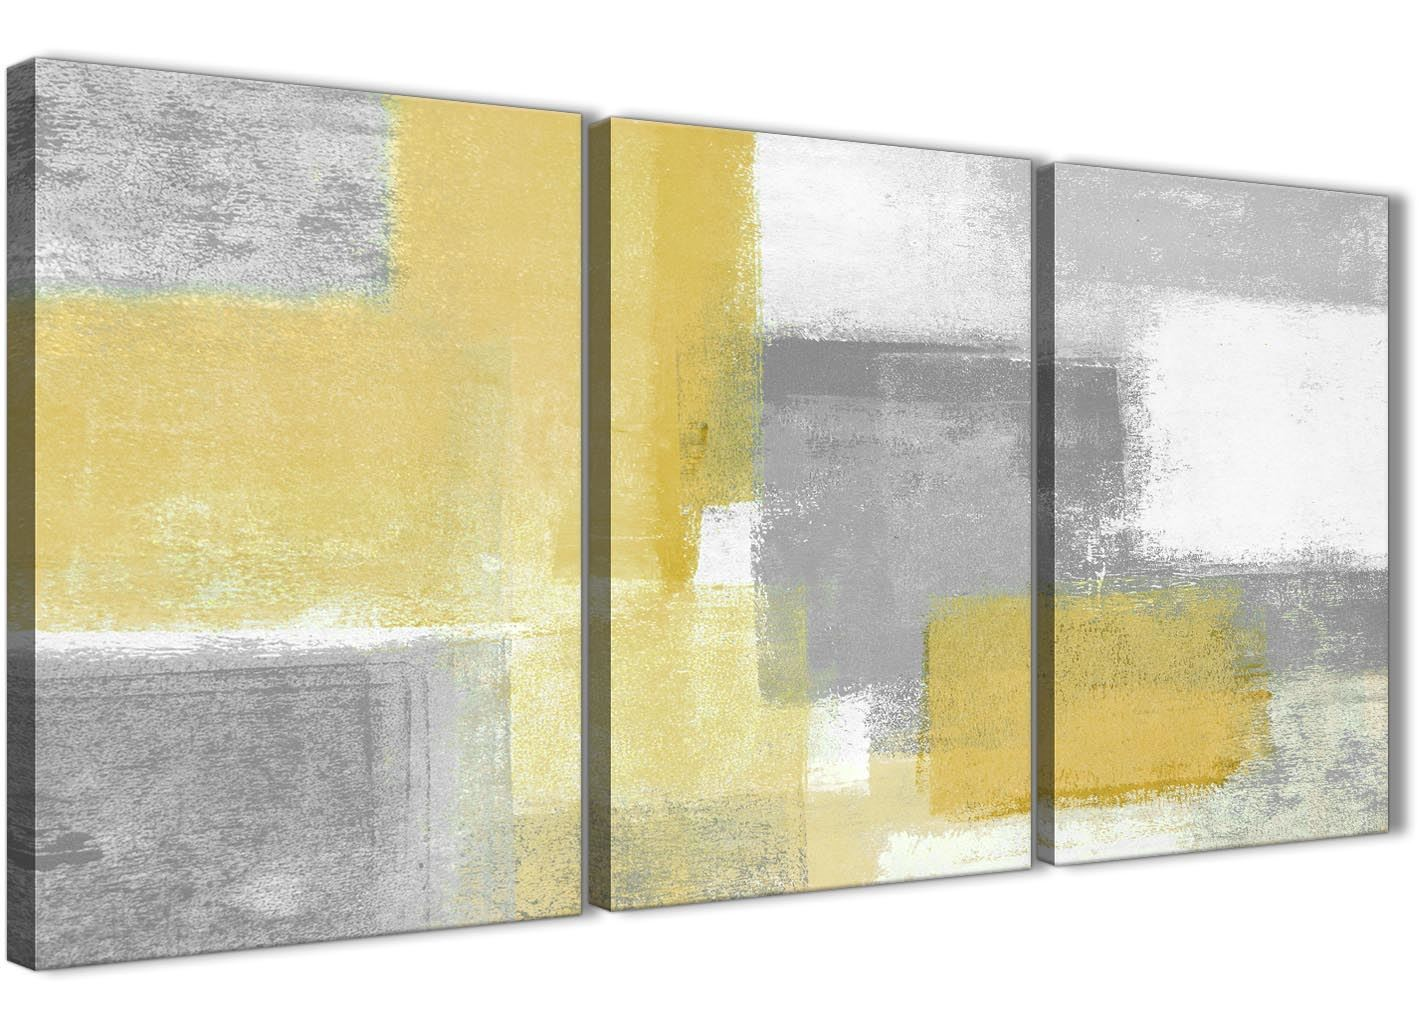 3 Part Mustard Yellow Grey Hallway Canvas Decor - Abstract 3367 ...